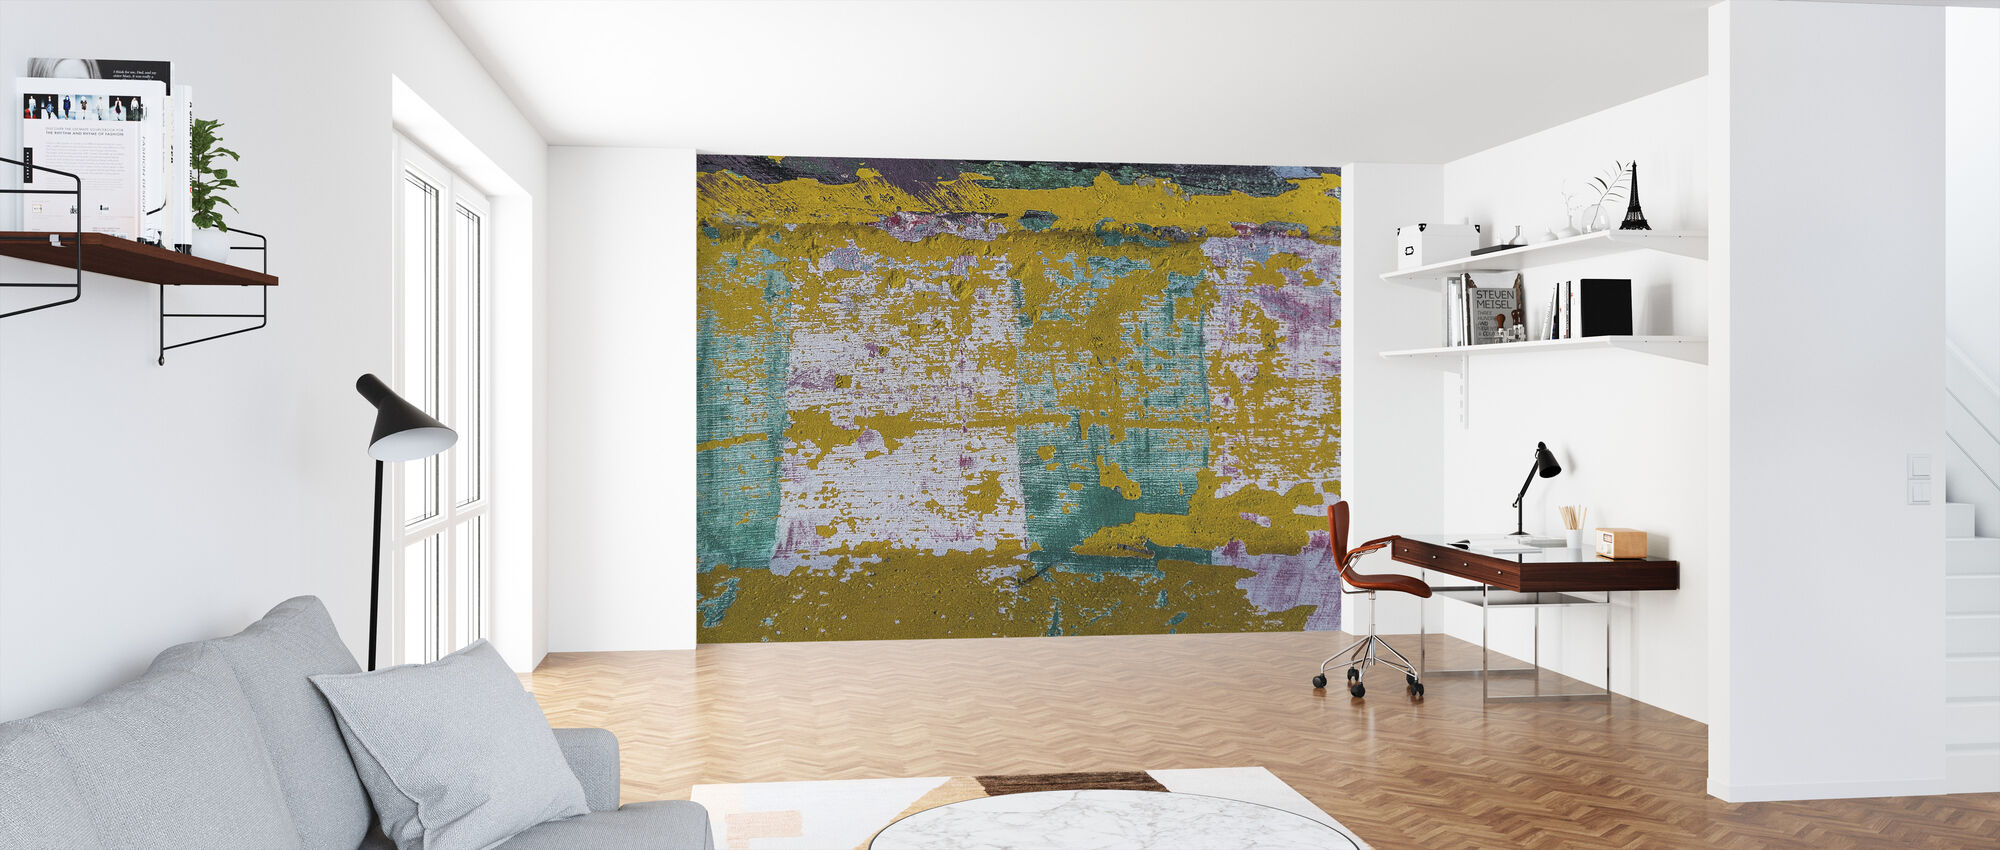 Abstract Wall Paint - Wallpaper - Office